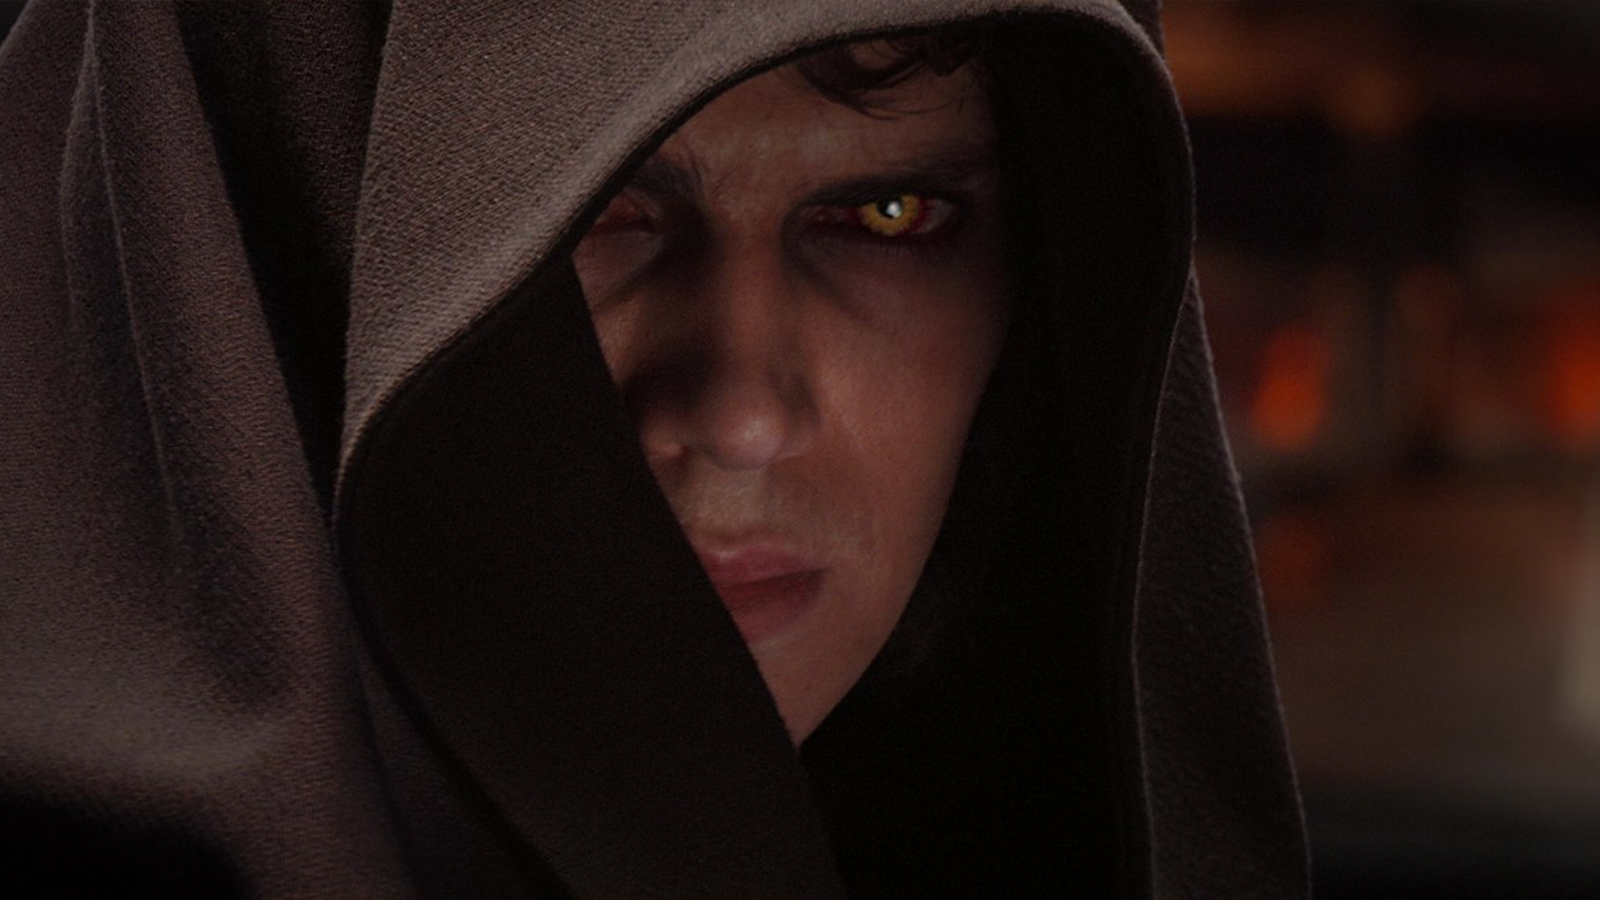 Anakin Skywalker falls to the dark side in Revenge of the Sith.